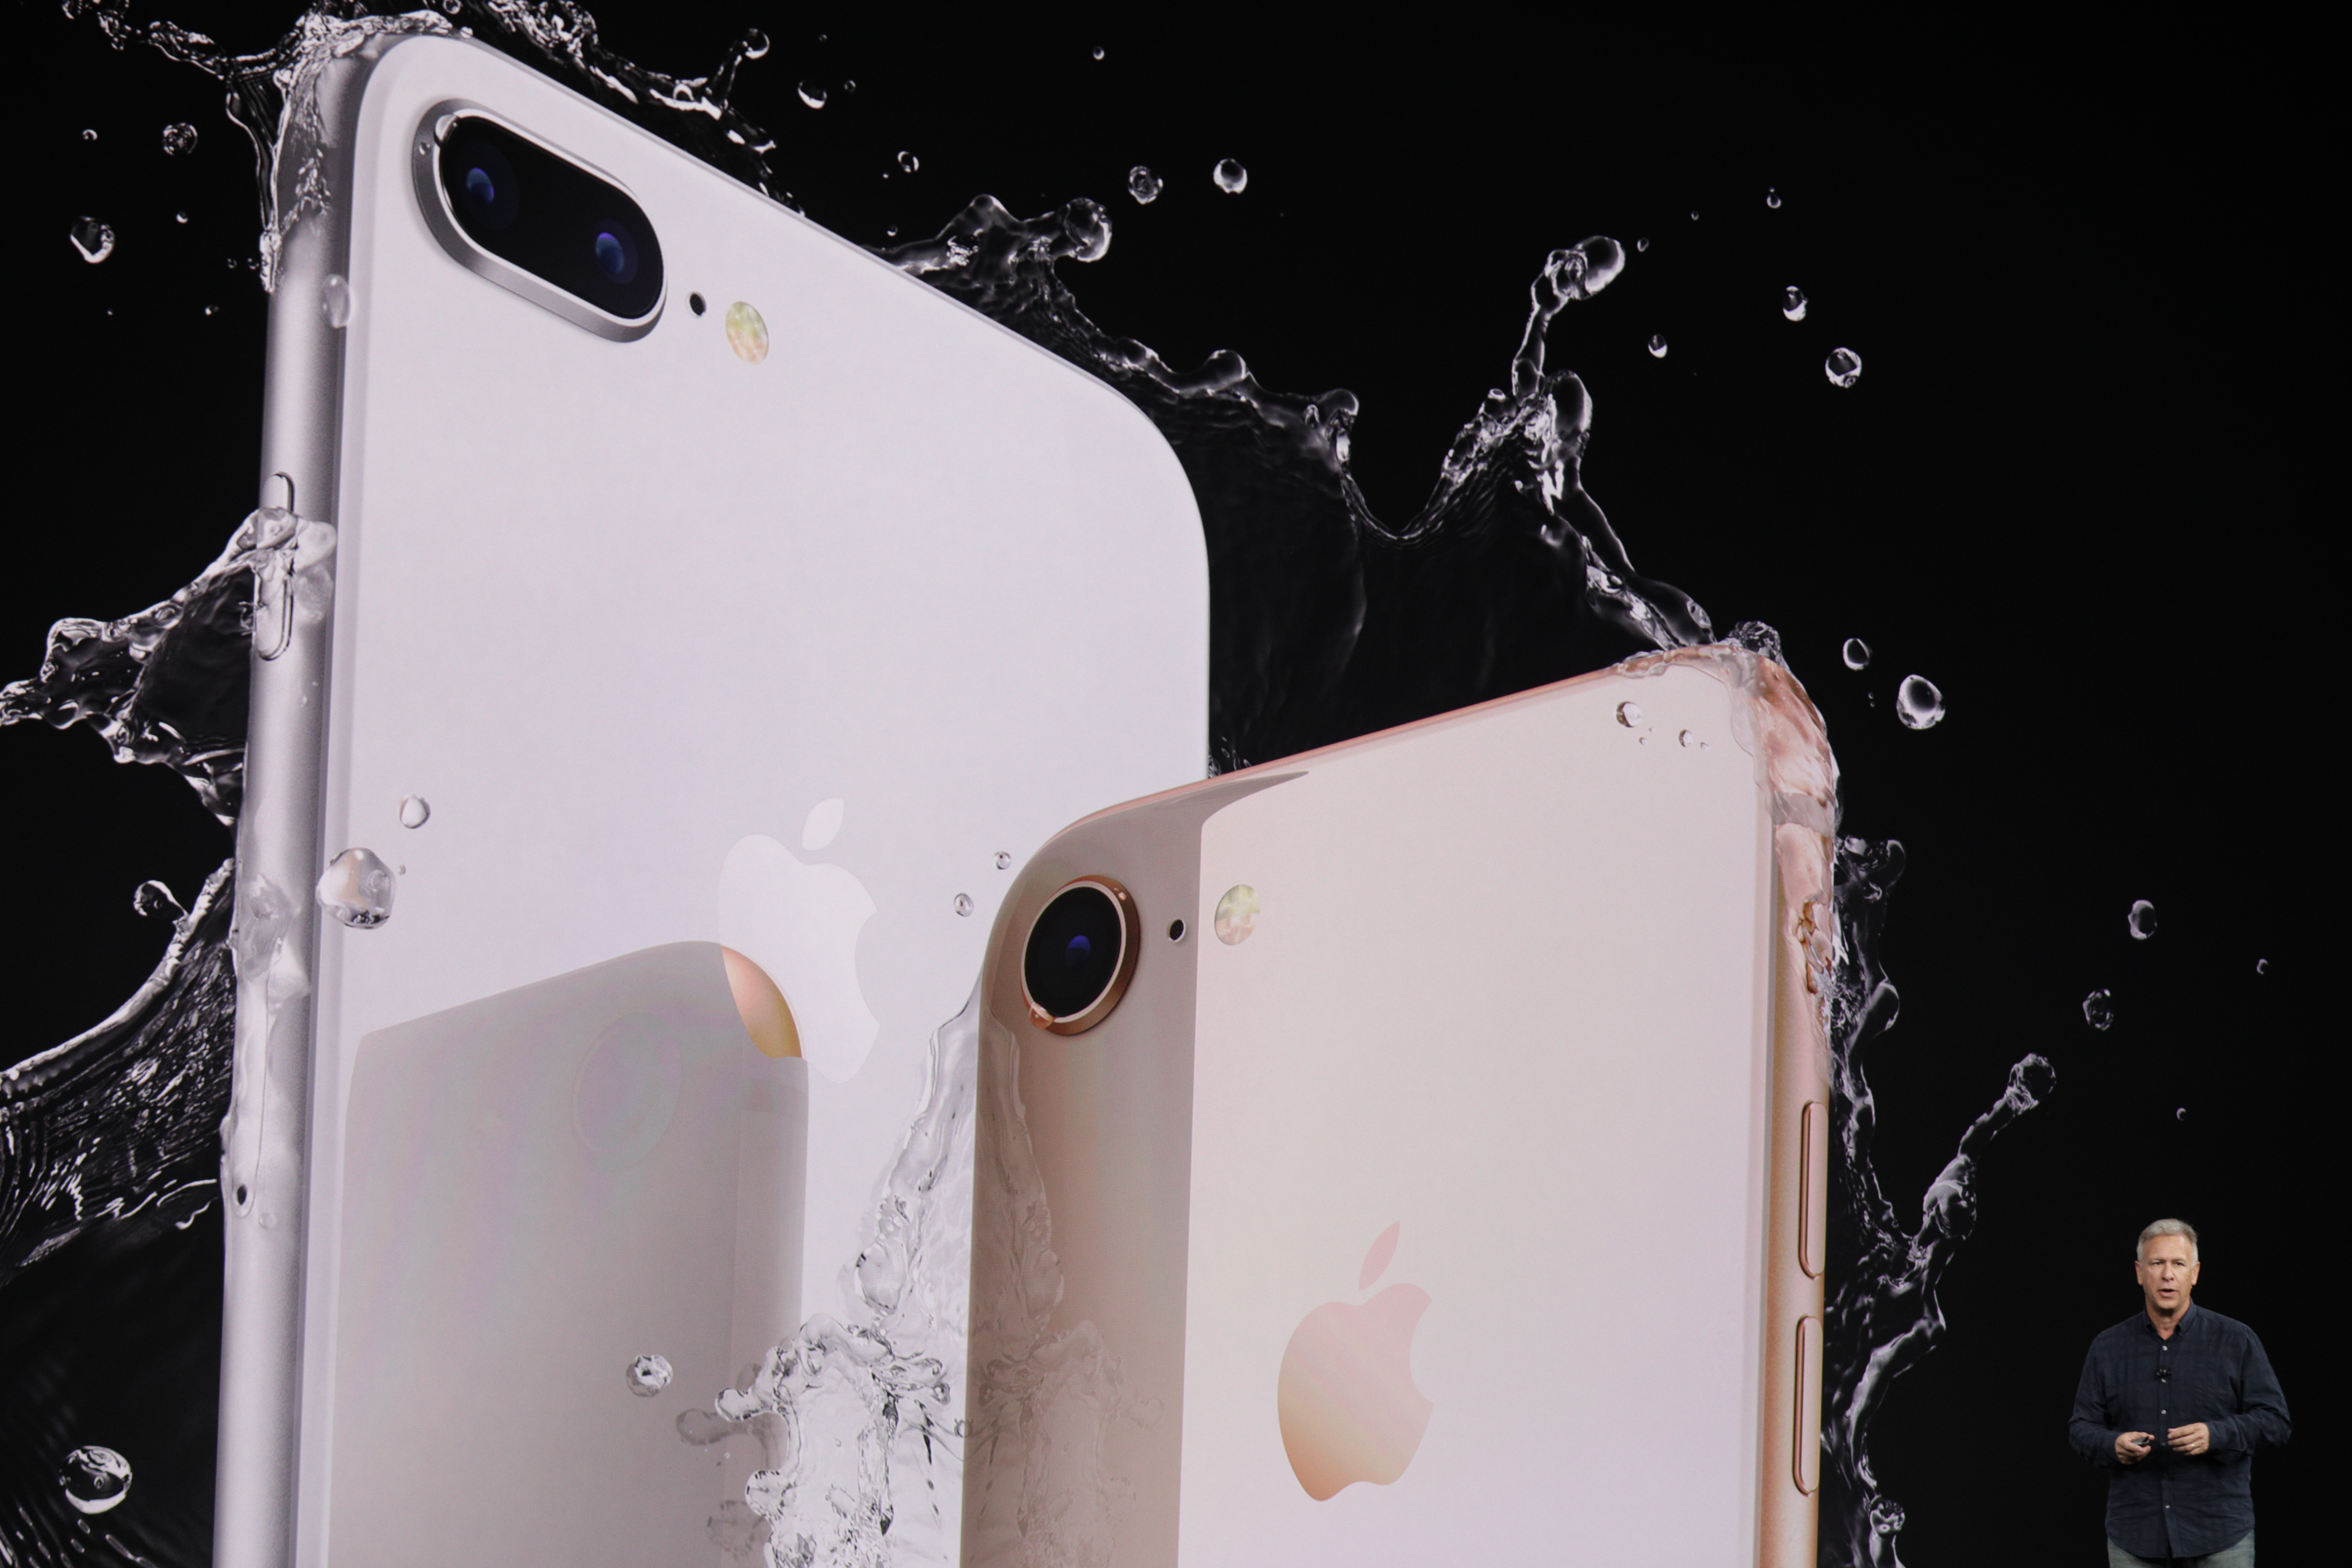 separation shoes bc09b 04b18 Apple announces the iPhone 8 and iPhone 8 Plus | TechCrunch